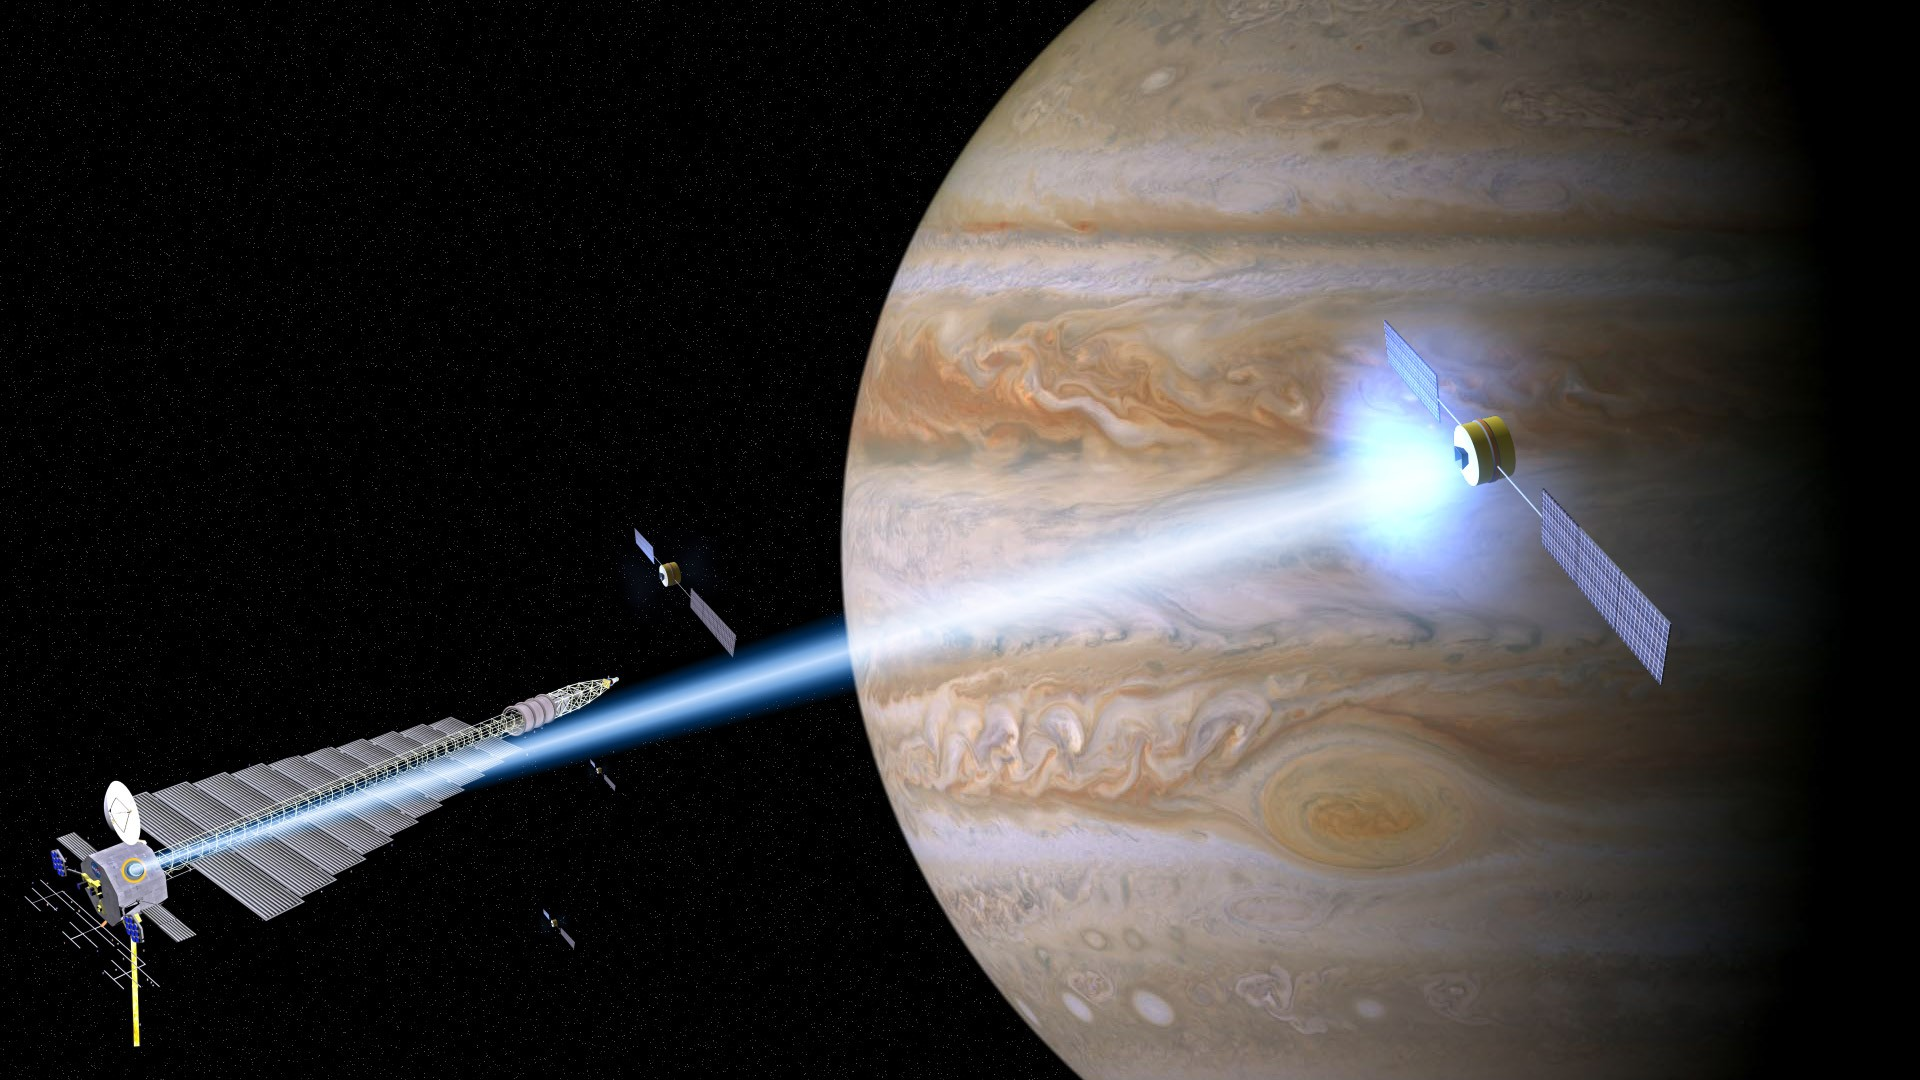 Six small steps that could add up to giant leaps in spaceships